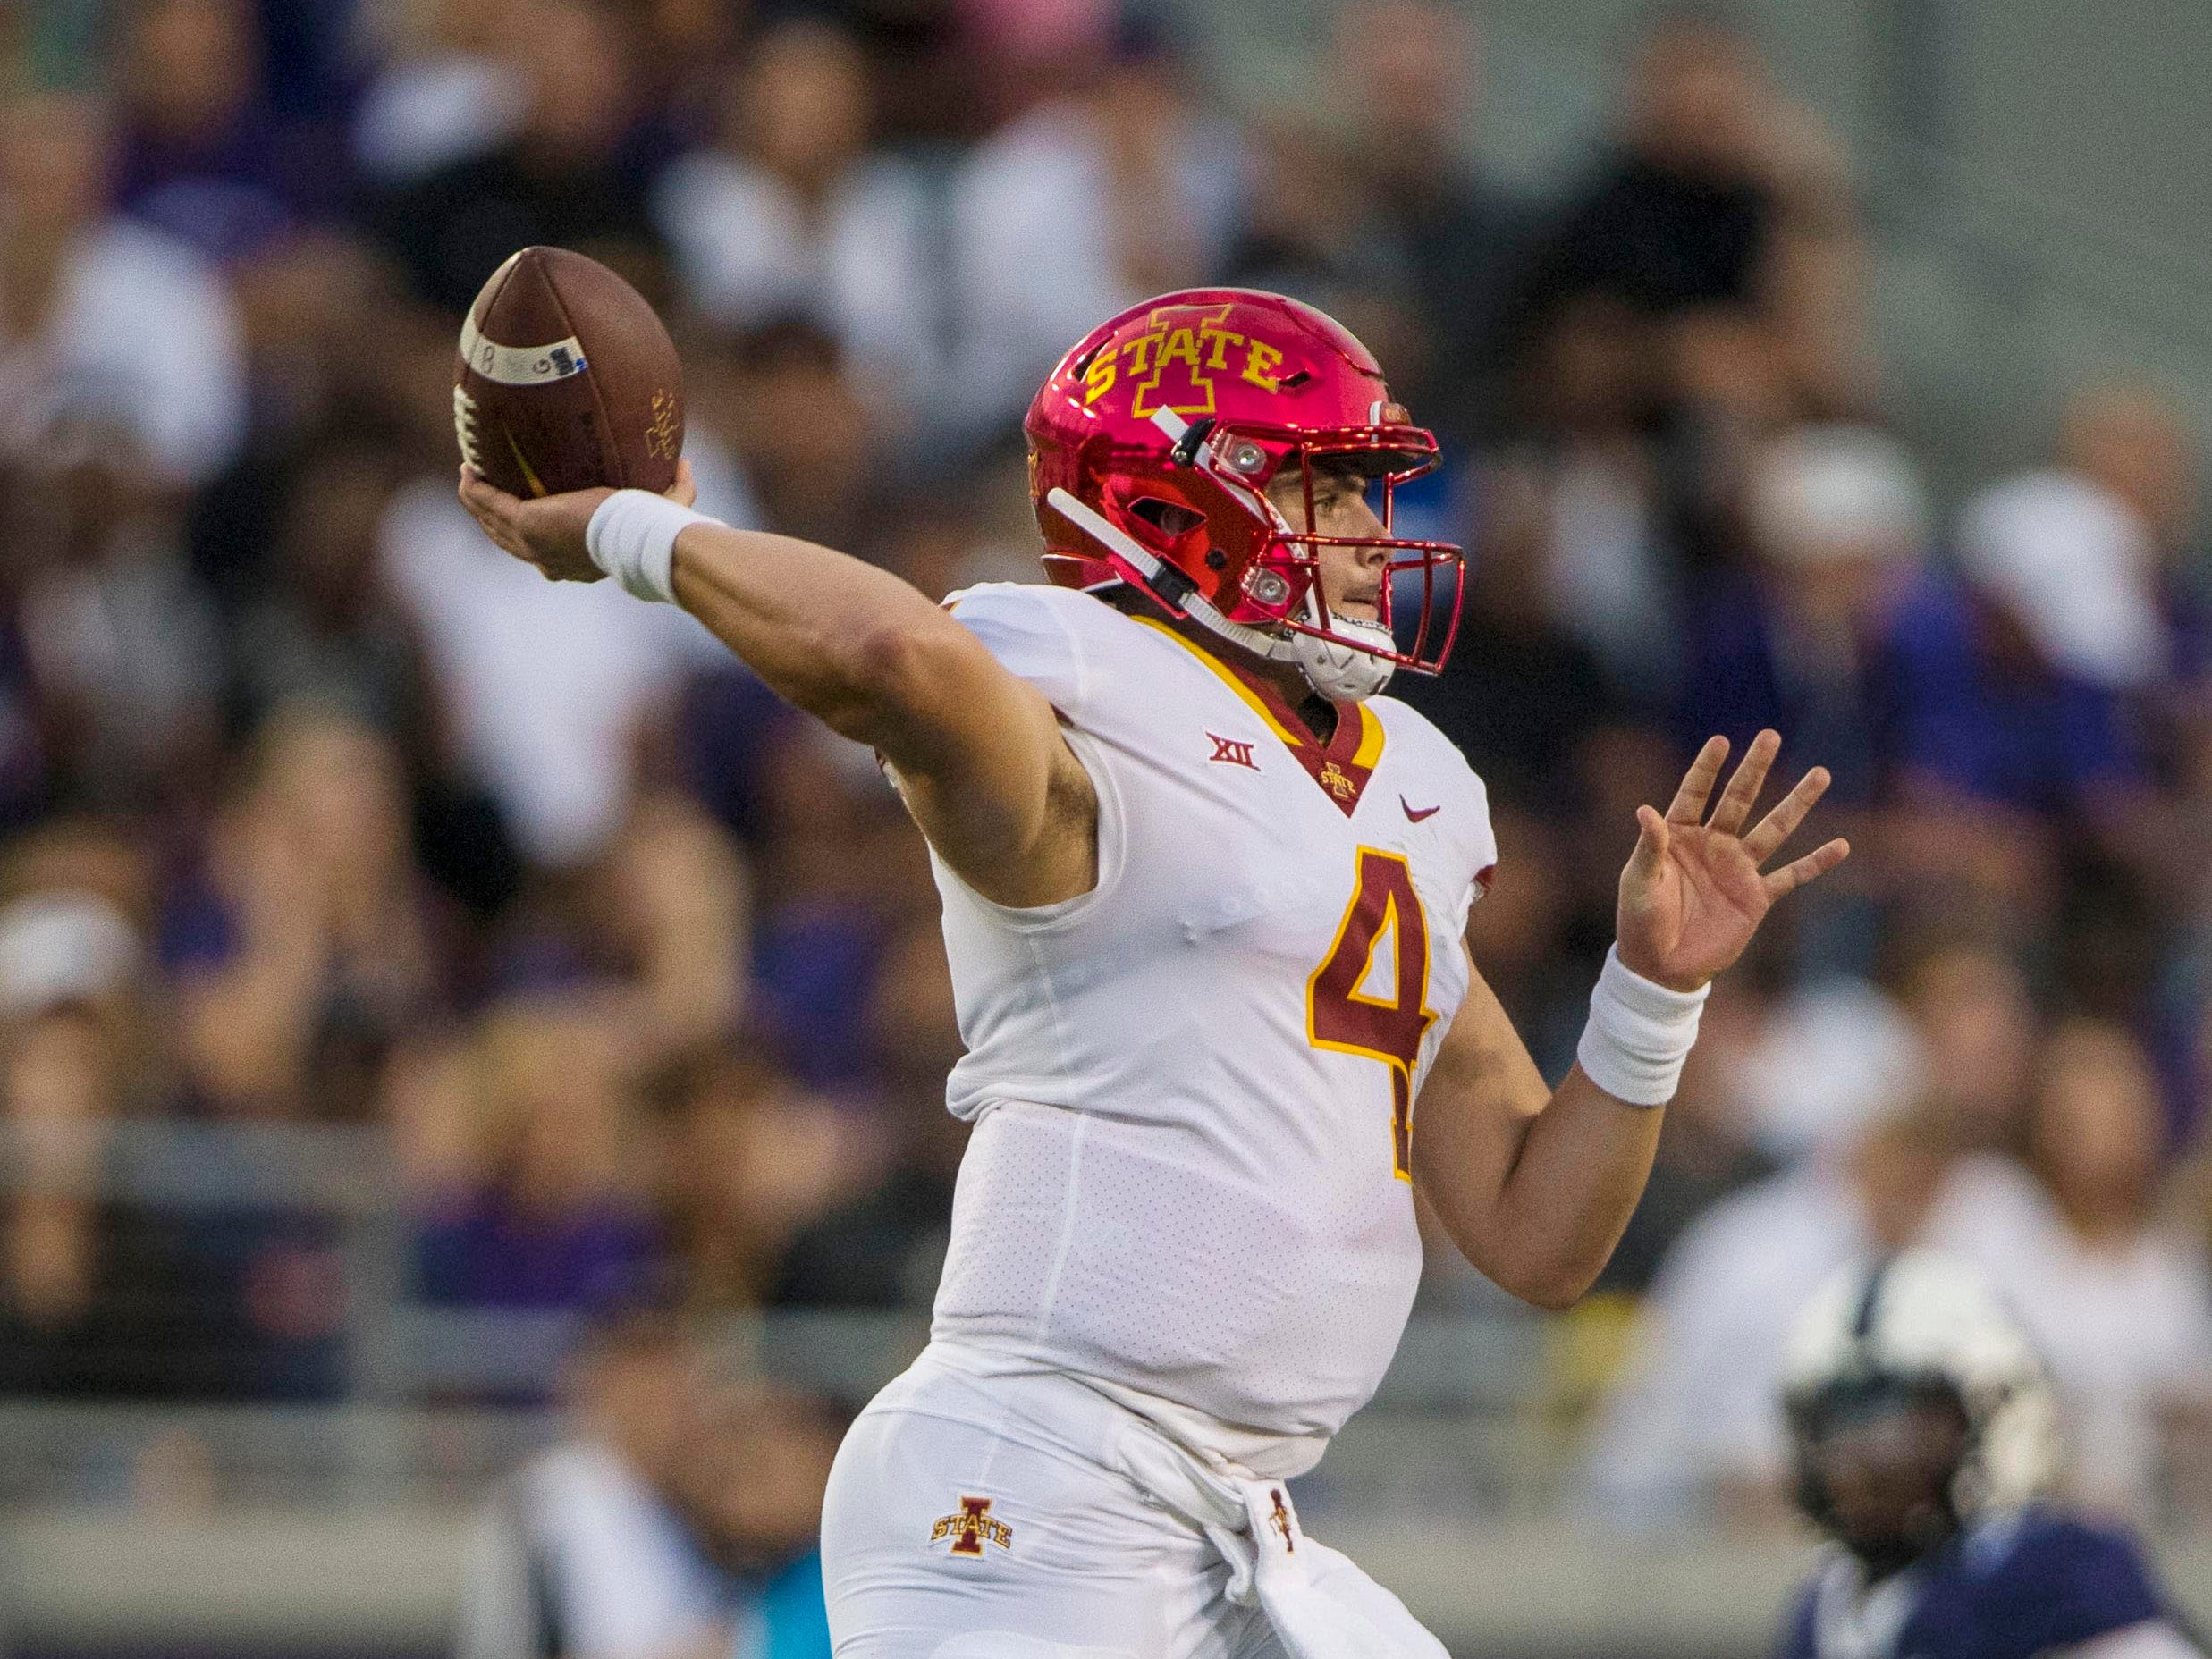 Iowa State Cyclones quarterback Zeb Noland (4) passes against the TCU Horned Frogs during the first half at Amon G. Carter Stadium.